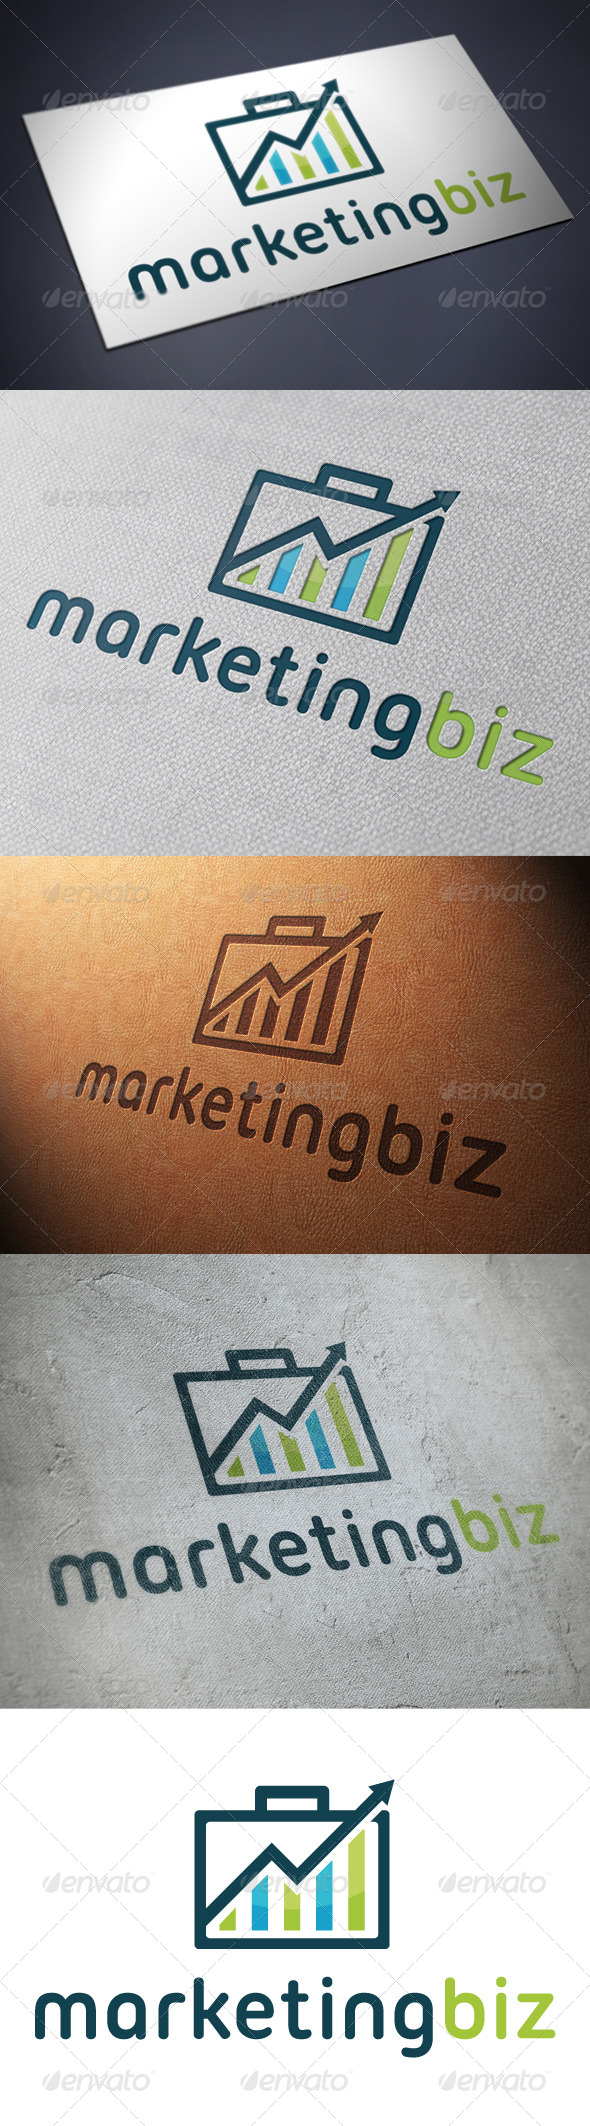 Marketing Business Logo Template - Objects Logo Templates